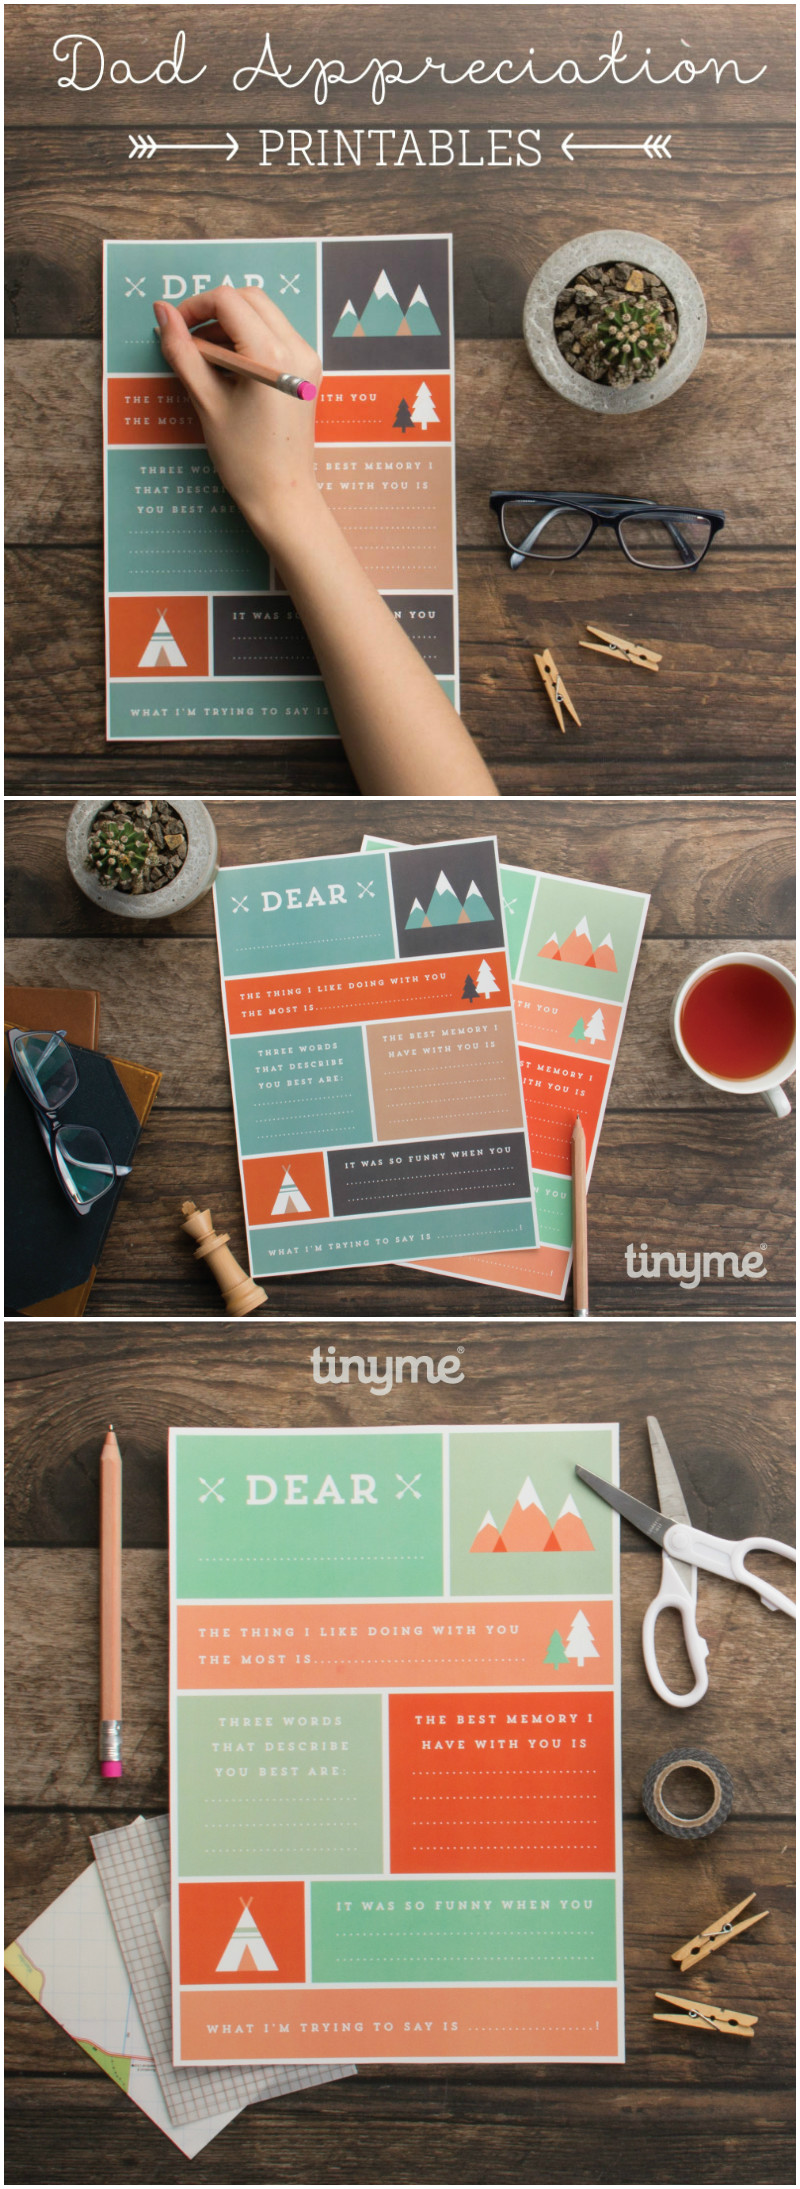 dad appreciation printables for Father's day. Cute idea for kids to make for dad